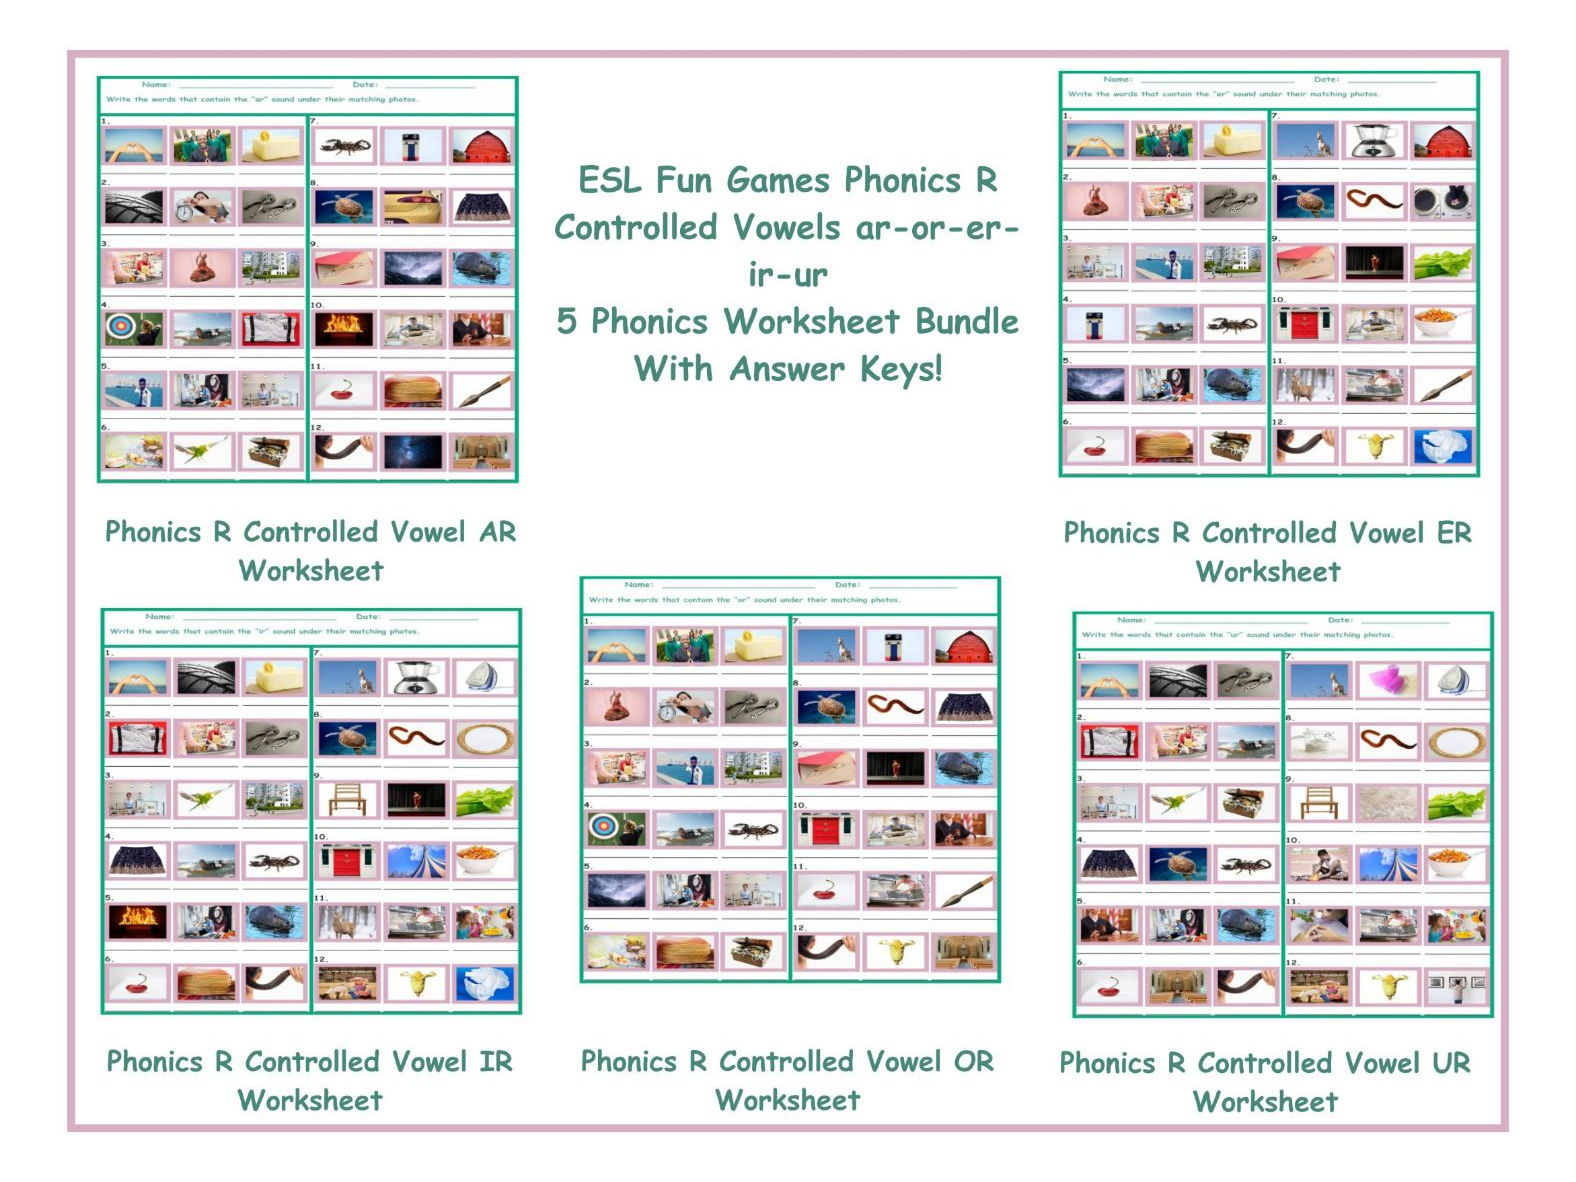 Phonics R Controlled Vowels Ar Or Er Ir Ur 5 Worksheet Bundle By Eslfungames